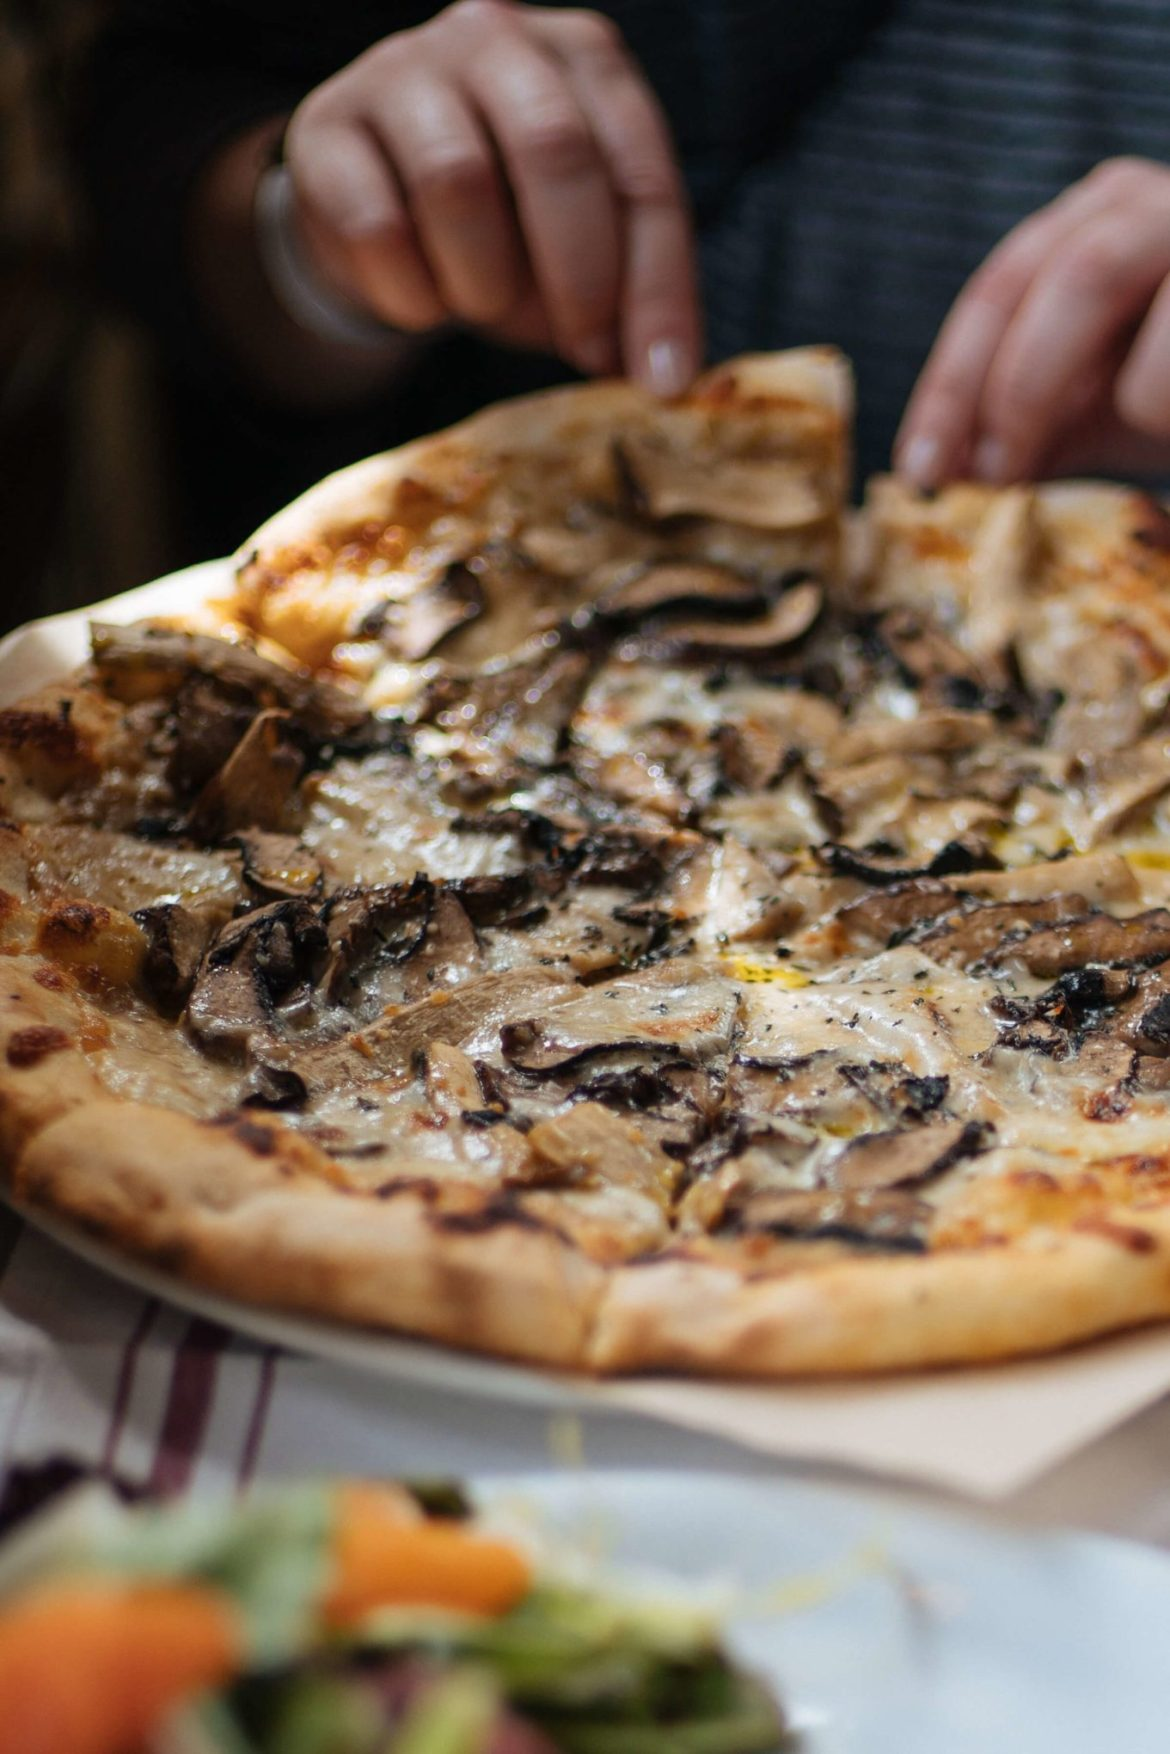 Stop at La Bicyclette in Carmel By The Sea, try the wood fired pizza Champignons, made with portobello and oyster mushrooms, mozzarella, thyme, caramelized onion and truffle, thetasteedit